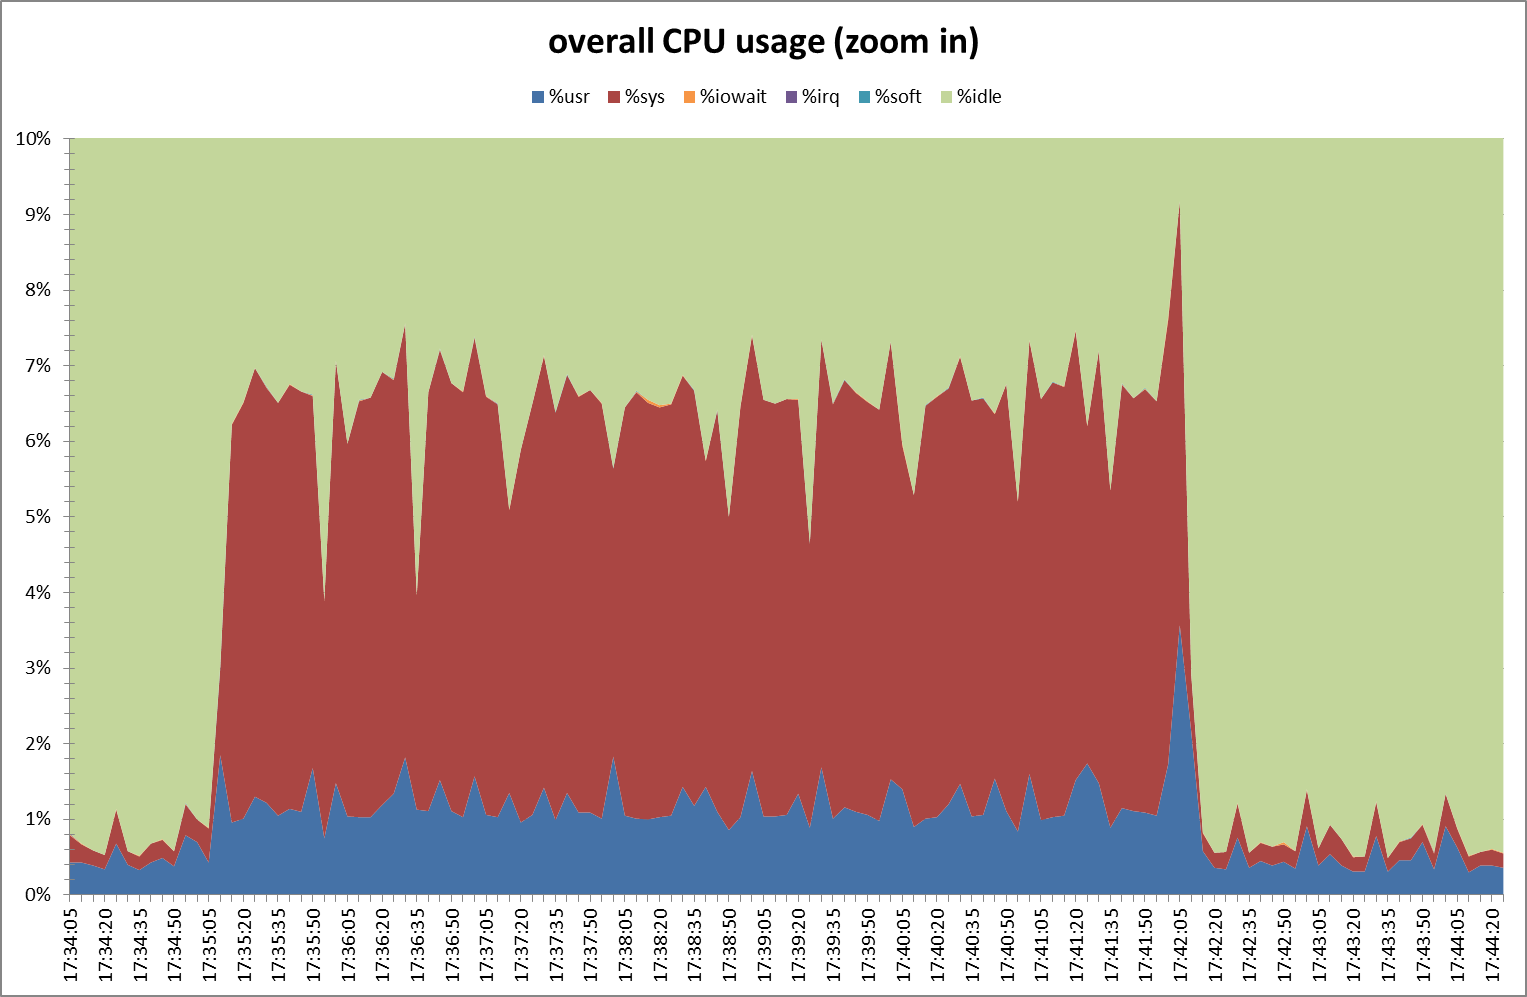 Overall CPU usage - zoom